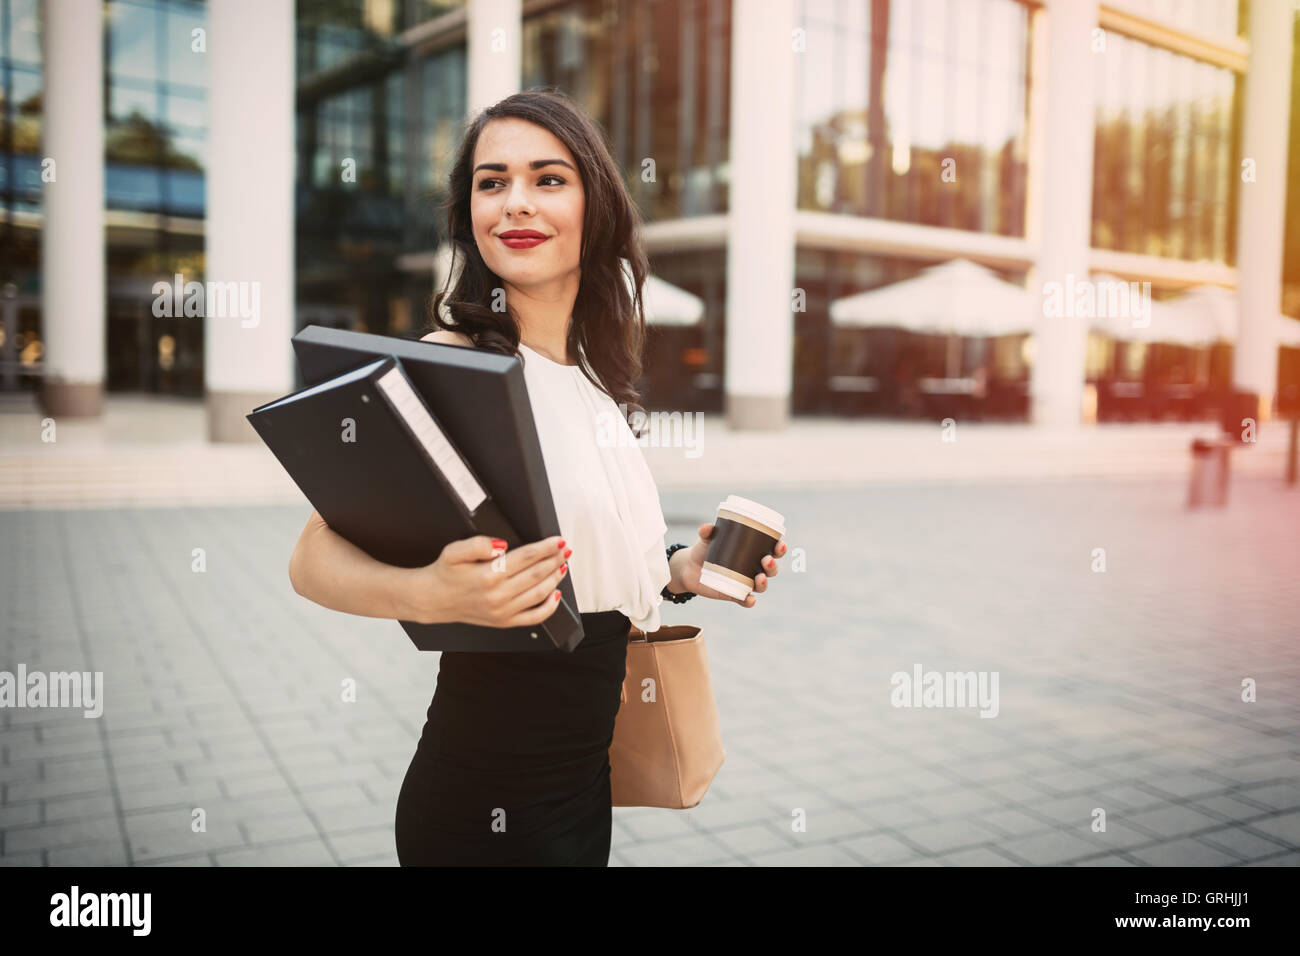 Businesswoman going to work with coffee in hand - Stock Image